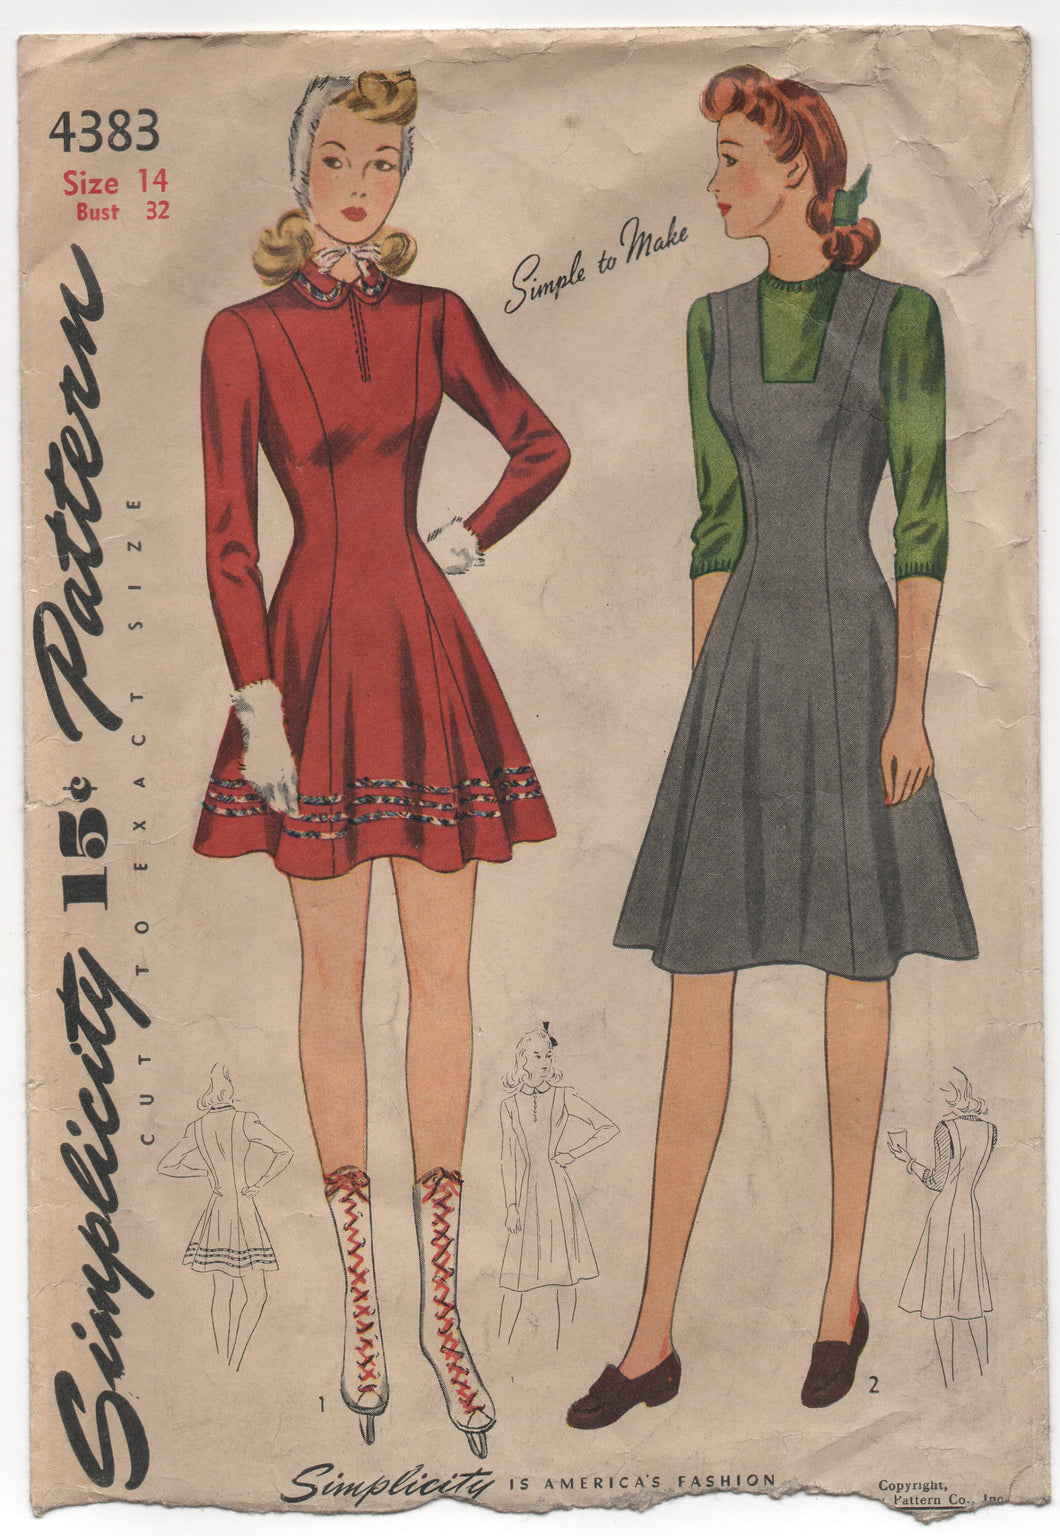 1940's Simplicity Skating outfit, Princess Dress or Jumper - Bust 32